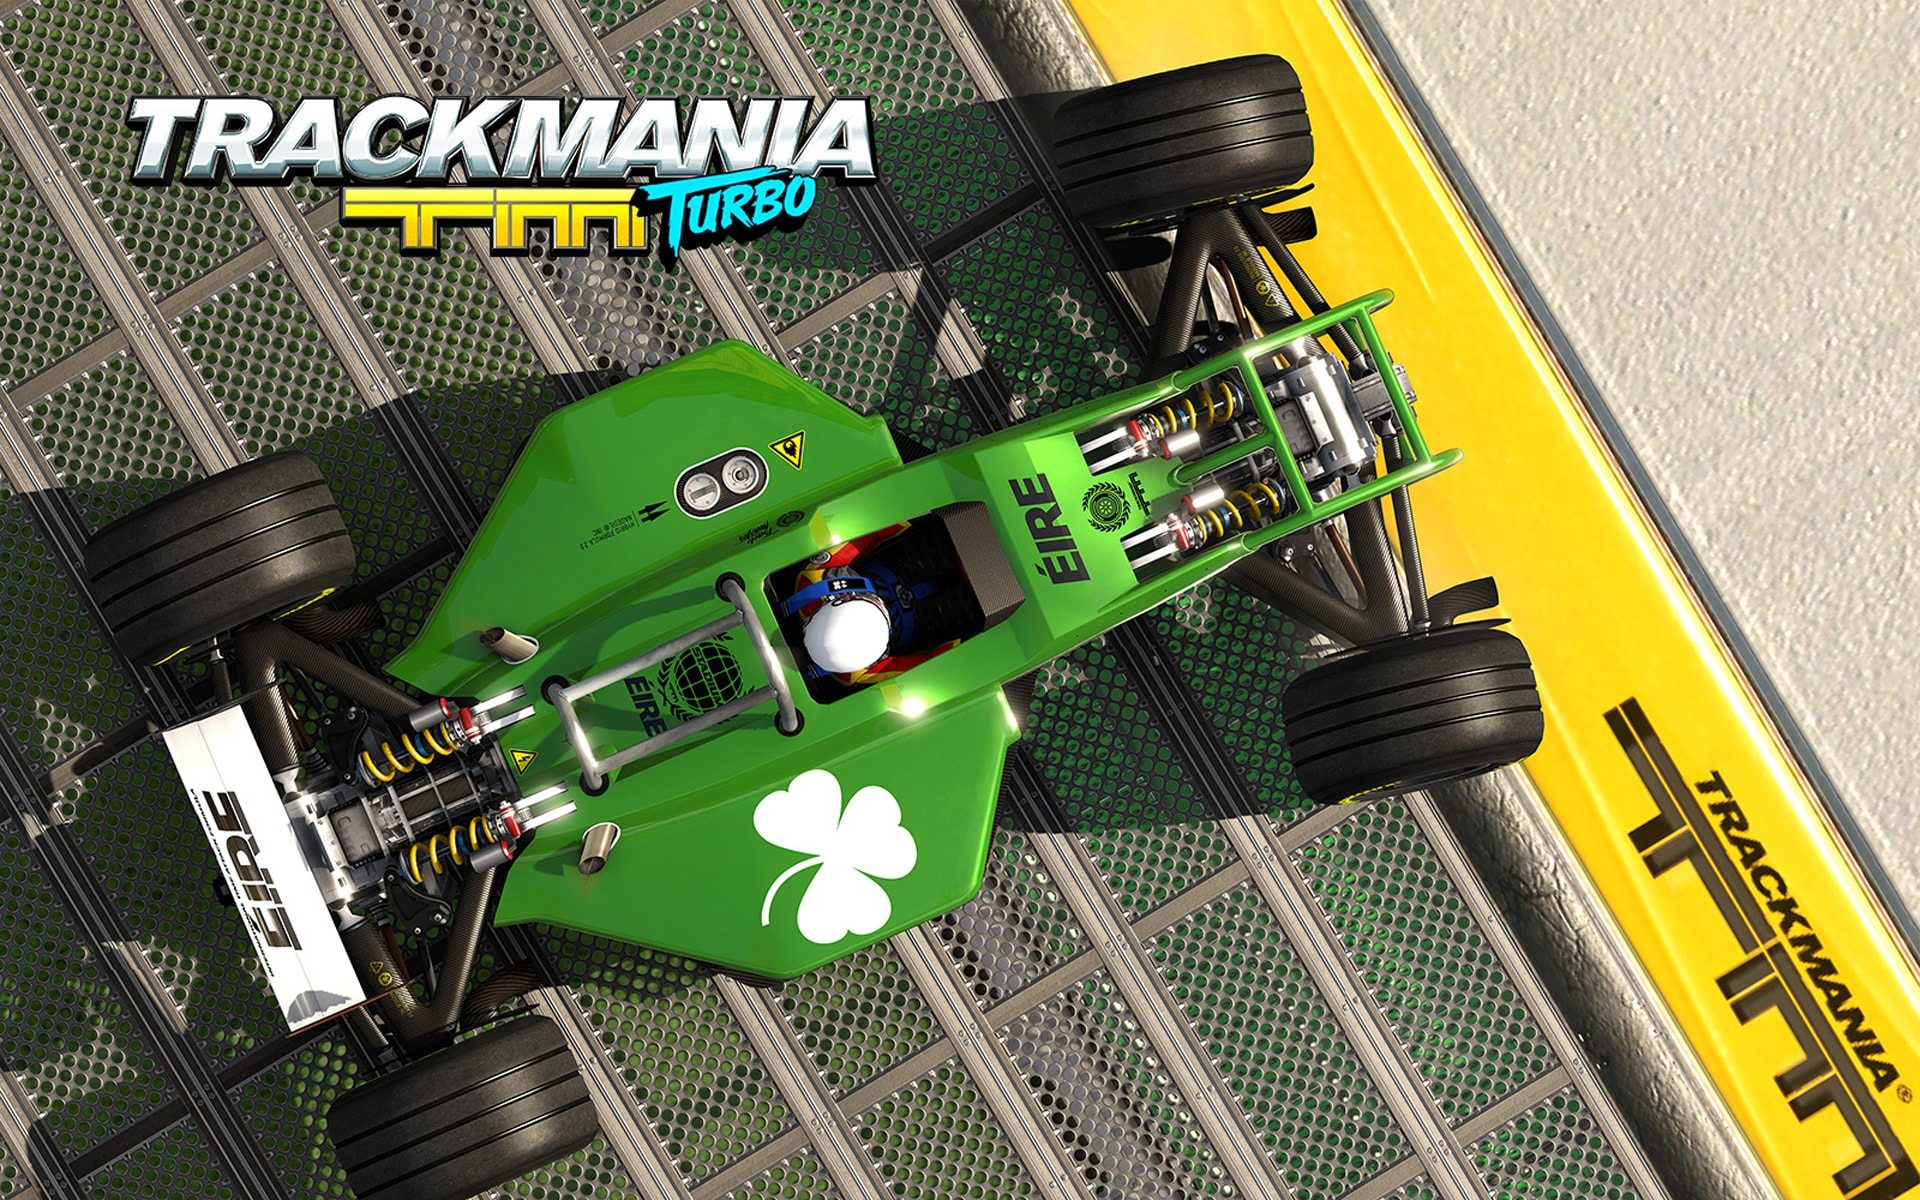 Trackmania Turbo Desktop wallpaper